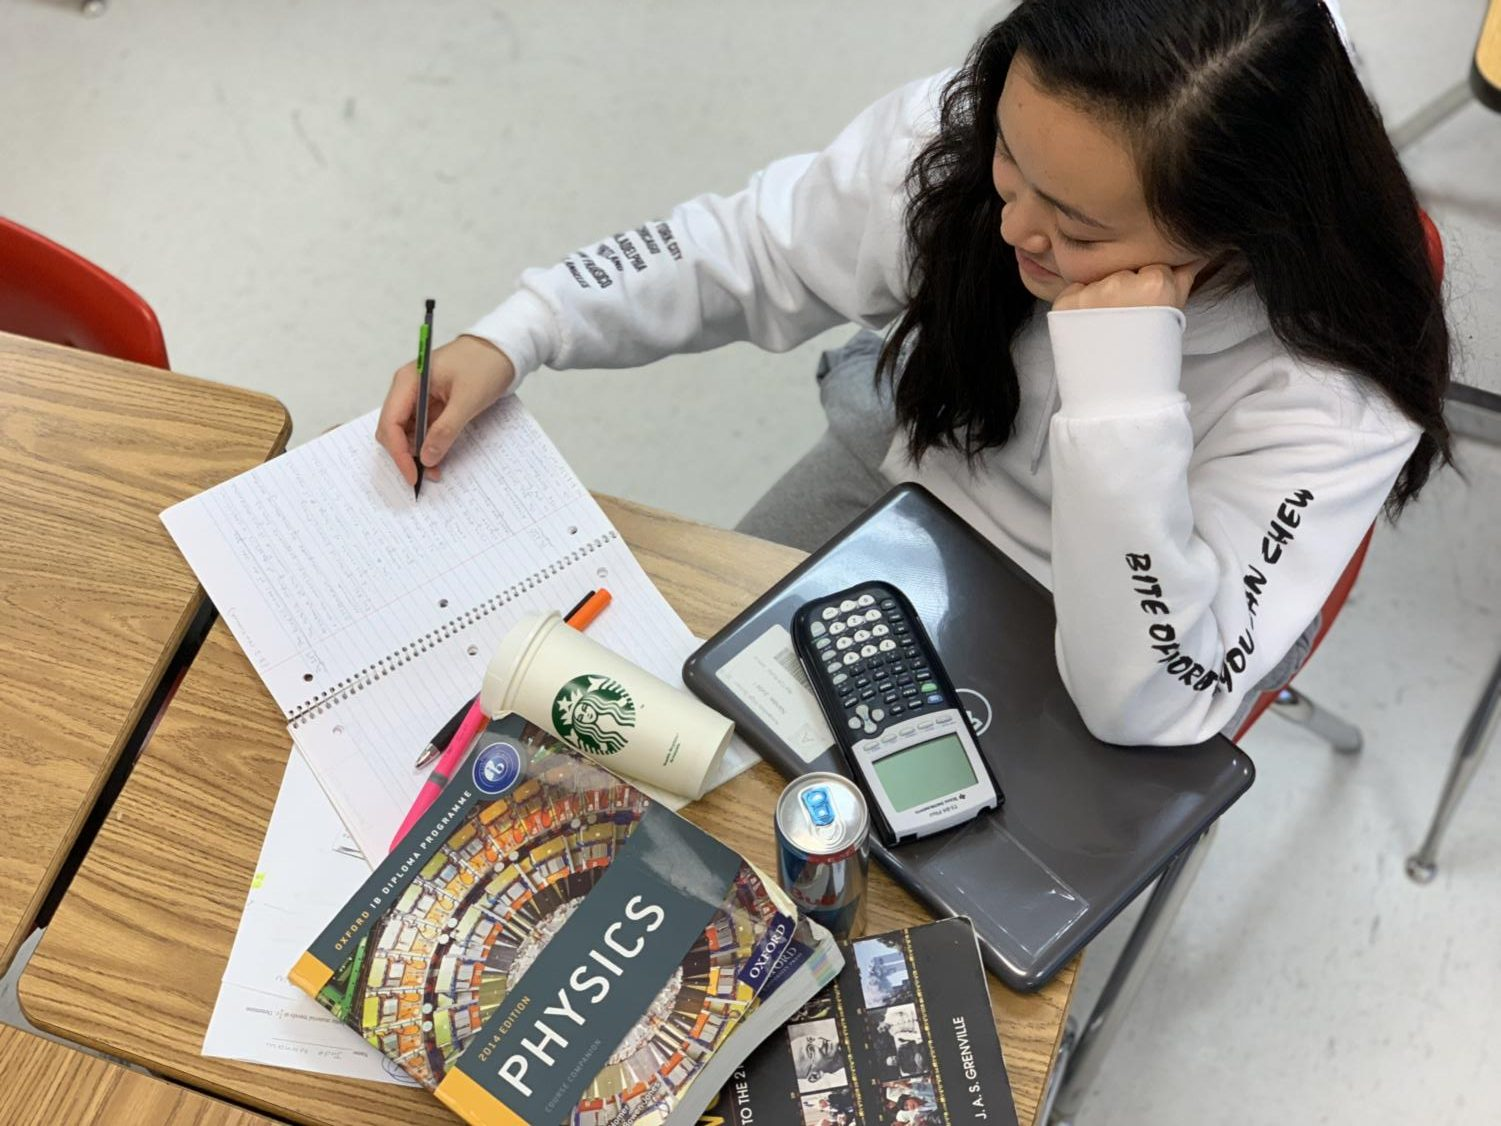 Senior Jasmine Phan works for hours on an overload of assignments every night after getting home from extracurricular activities and clubs at school.